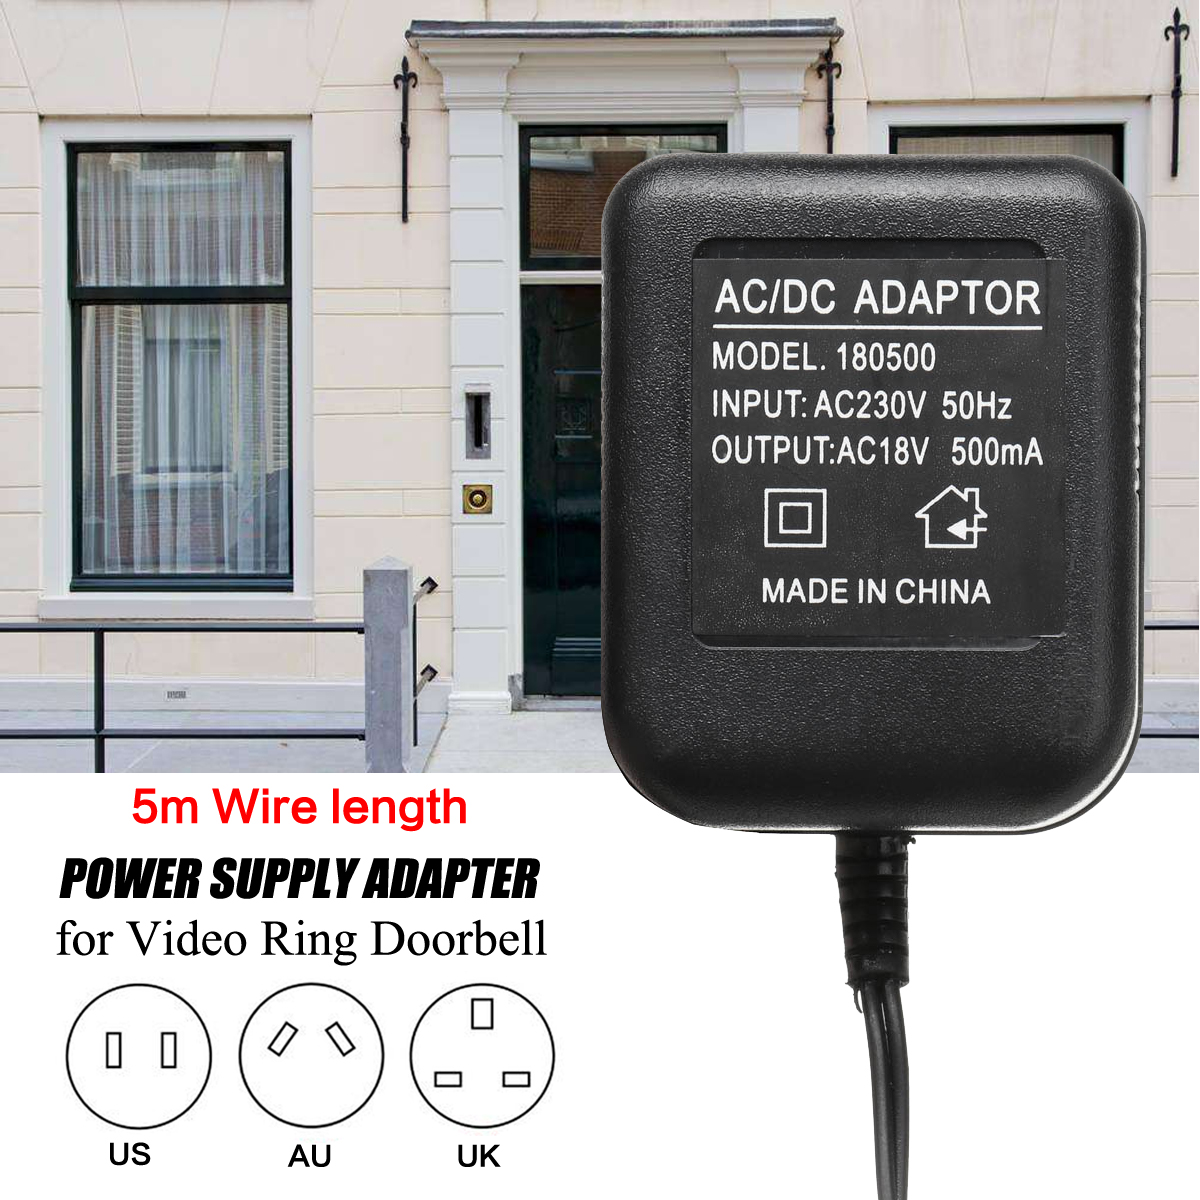 AU/UK/US Plug Power Supply Adapter Transformer with 5 Meters Wire For Video Ring Doorbell AC18V AC230V ac 18v 500ma 9w output uk power supply adapter transformer easy installation for video ring doorbell